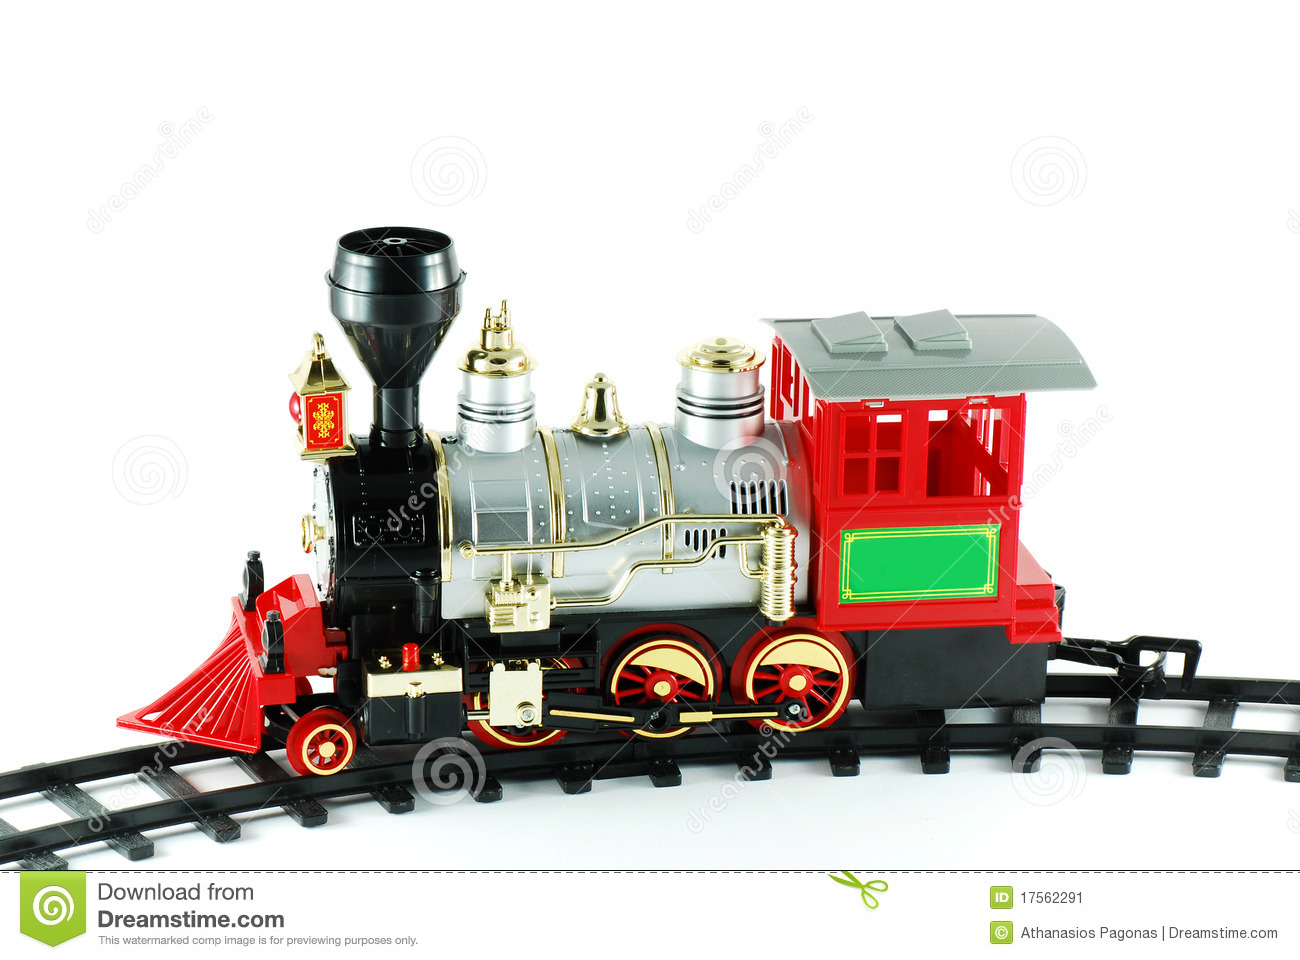 It is an isolated toy train on white background.